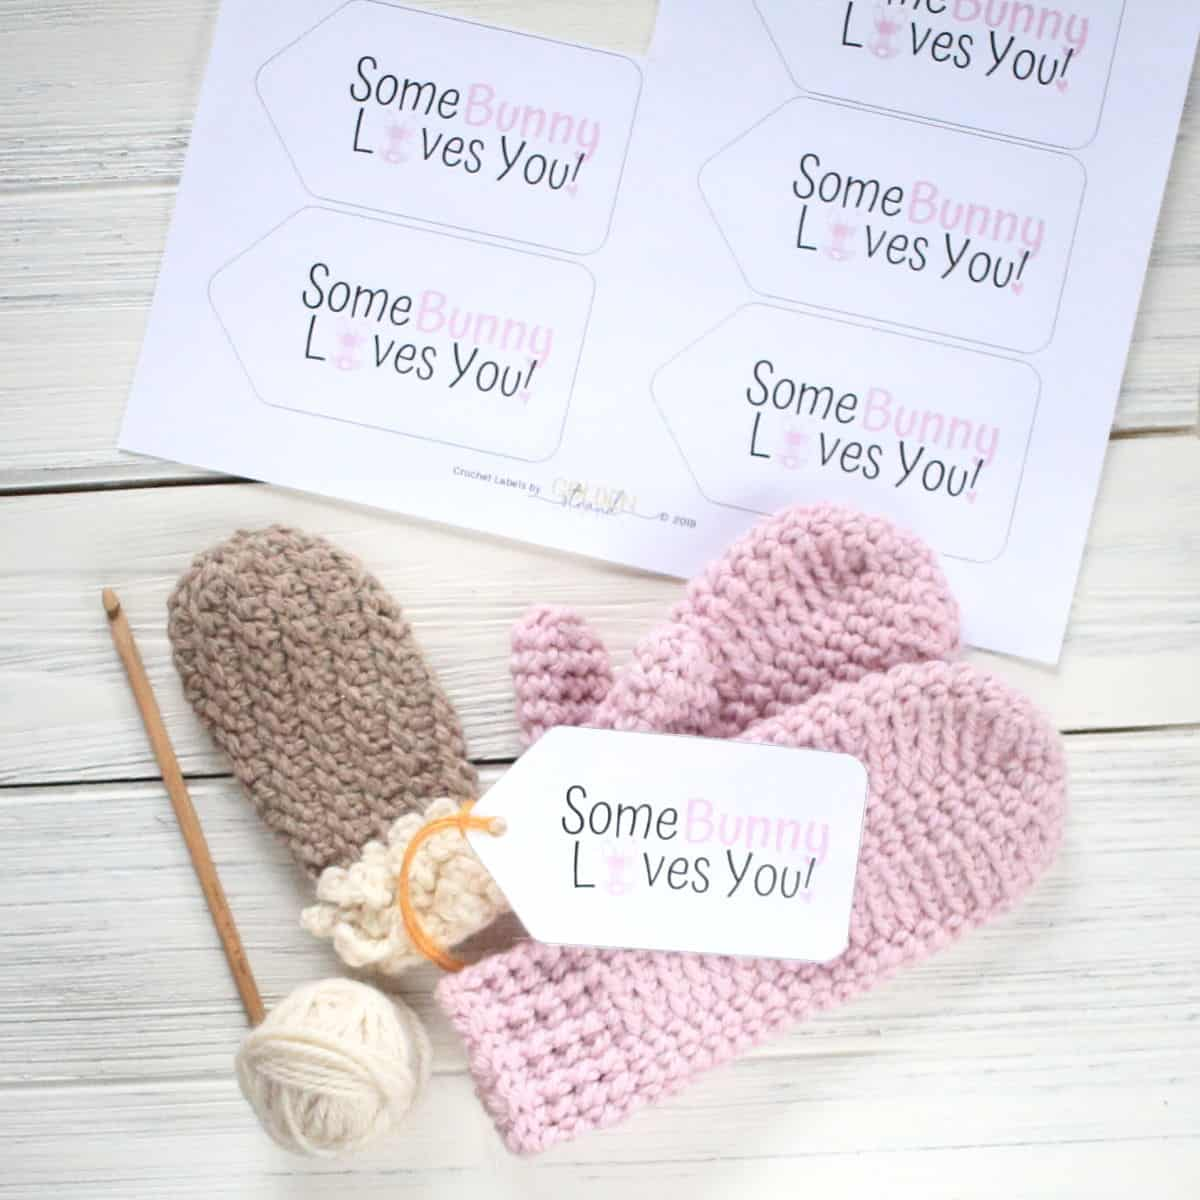 Gingham Bunny Gift Tags - Some Bunny Loves You